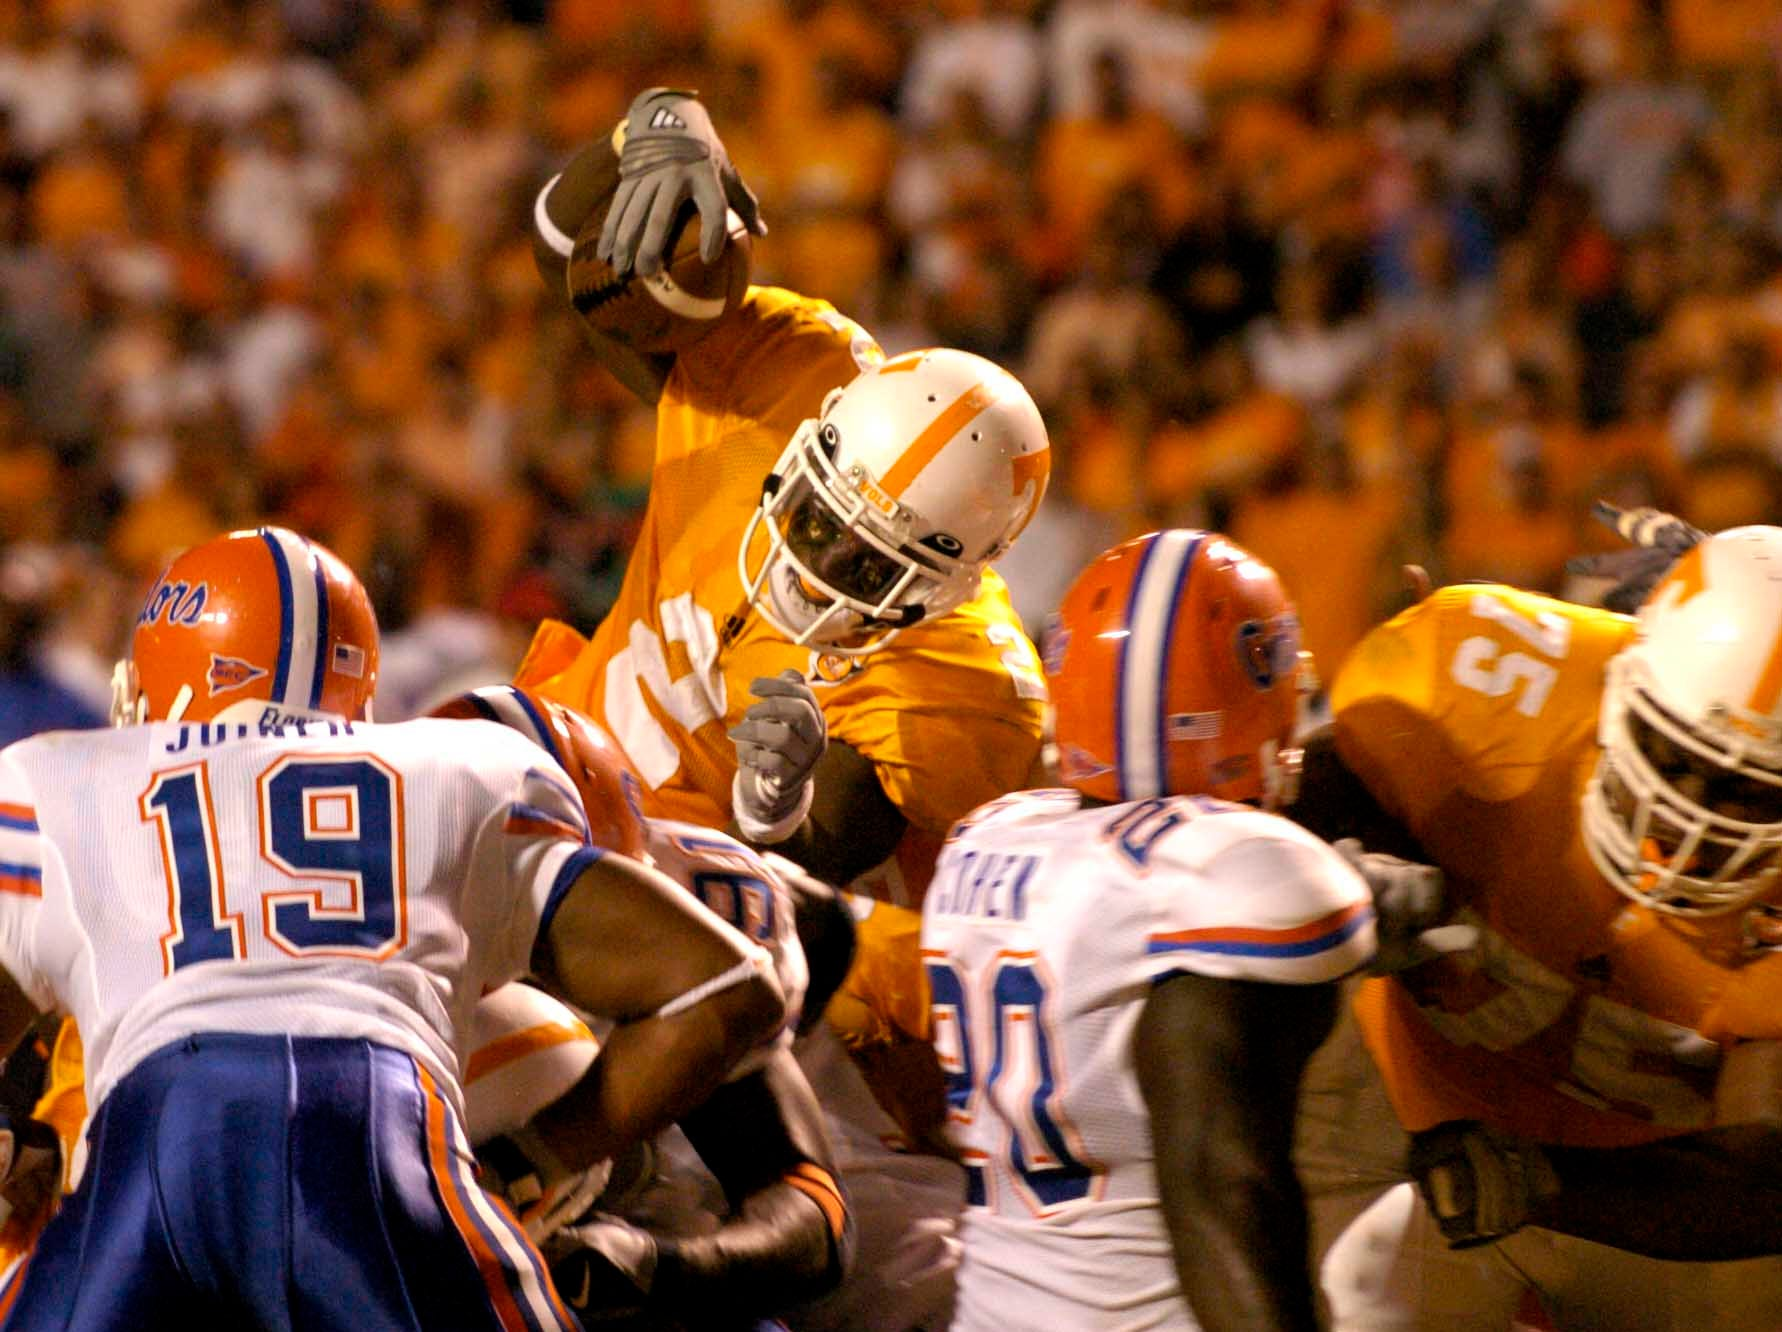 Tennessee's Montario Hardesty (2) dives over the Florida line to score a touchdown in the third quarter Saturday night in Neyland Stadium.